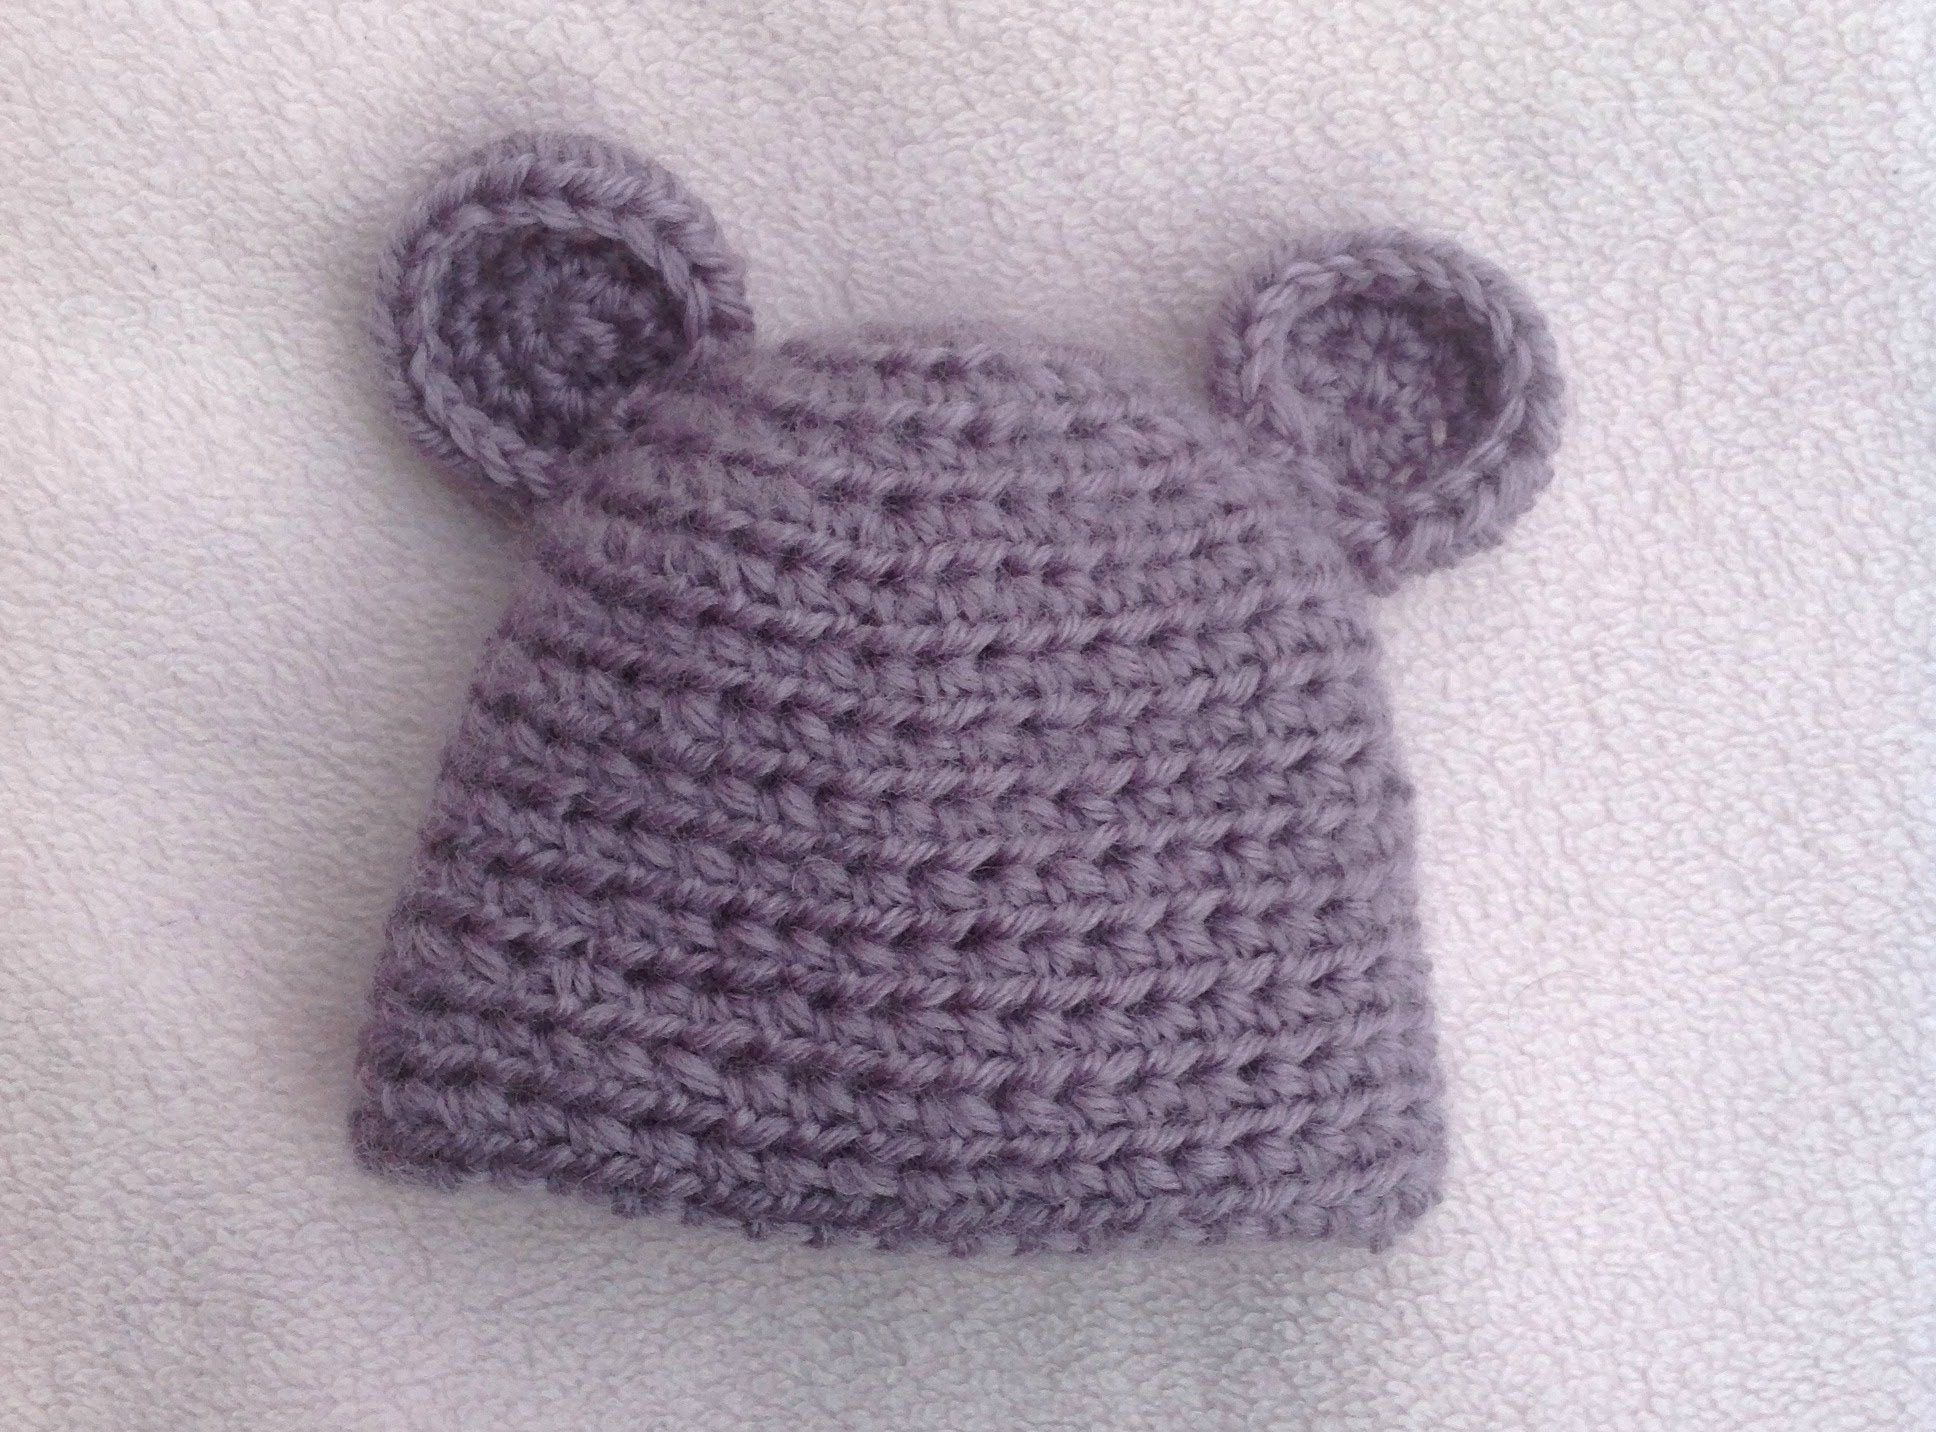 HOW TO CROCHET A VERY EASY BABY HAT TUTORIAL | Crochet | Pinterest ...